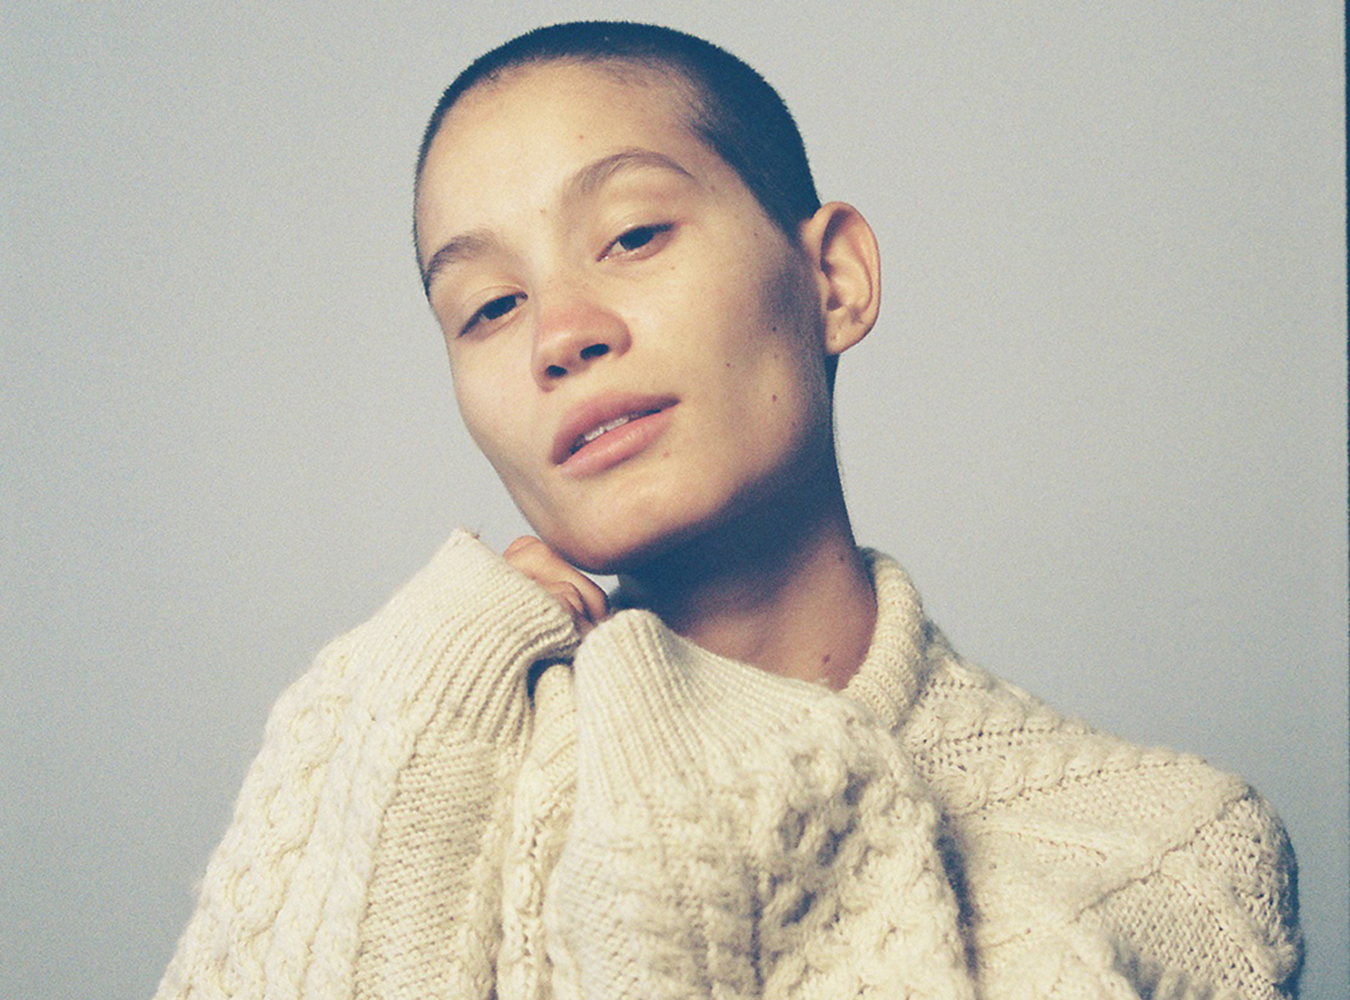 Bald Statement - Mathieu Rainaud, Fleur Huynh Evans